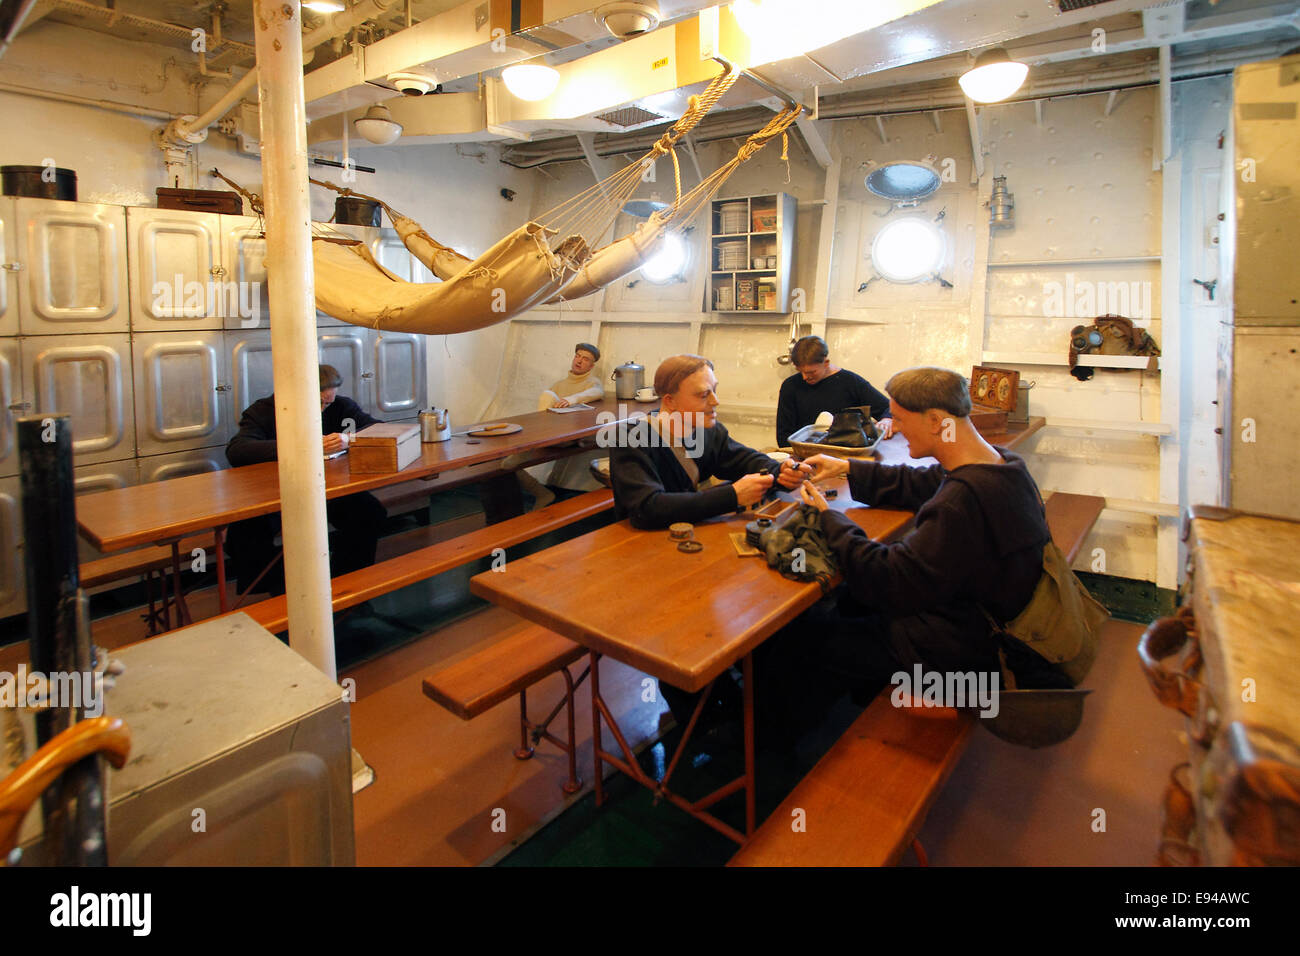 Arctic Mess decks. Ratings slept and ate in communal areas - messes. They slept in hammocks 21 inches apart (53cm). - Stock Image